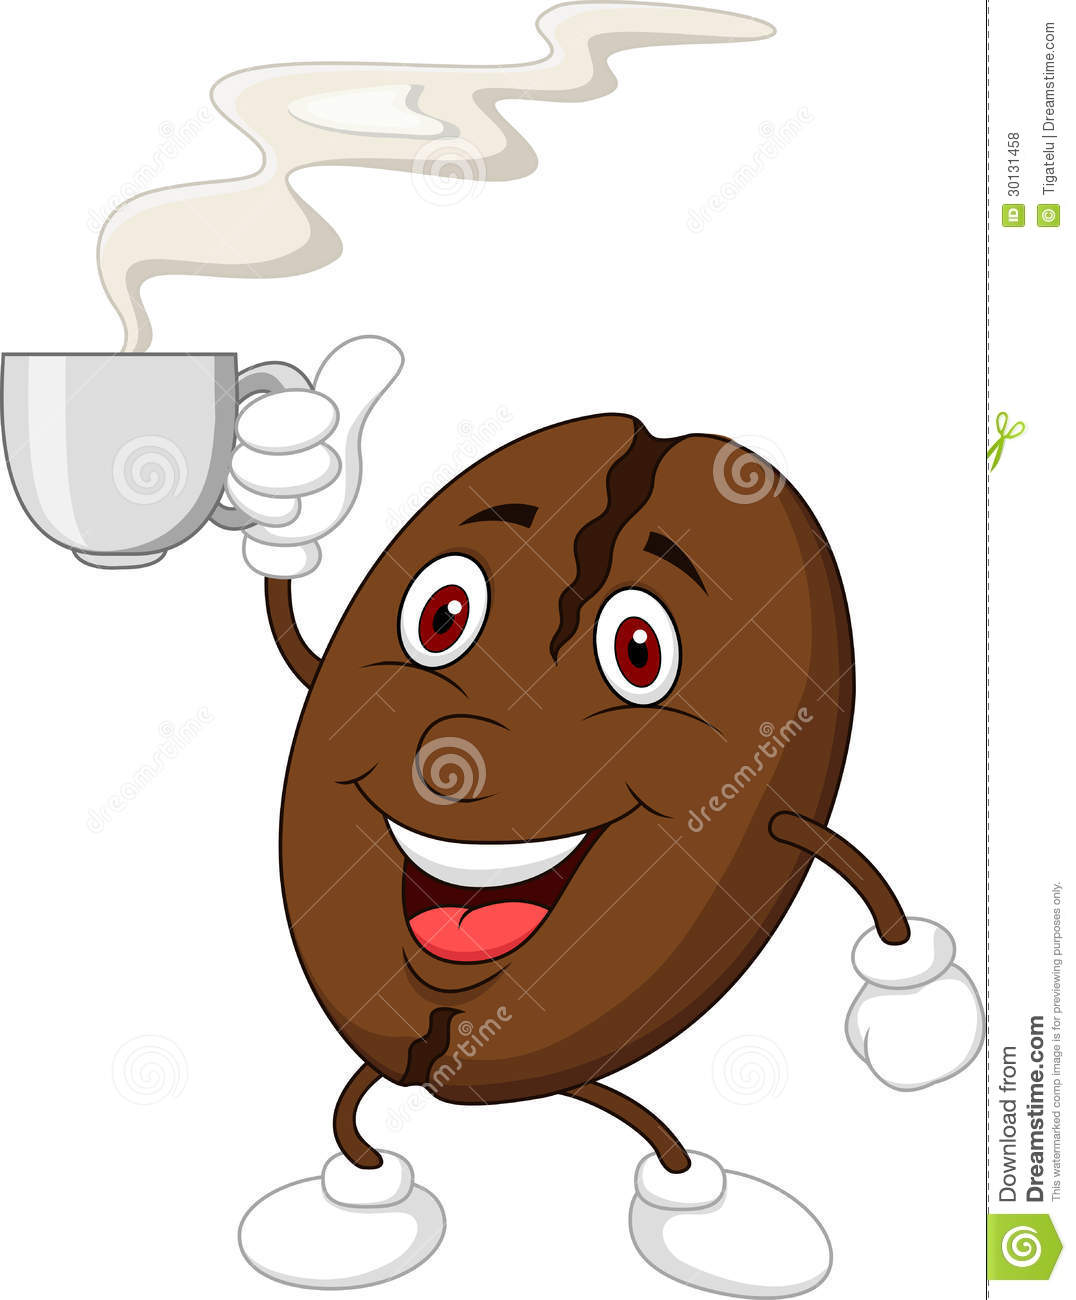 Cute Coffee Bean Cartoon Character Royalty Free Stock Photos - Image ...